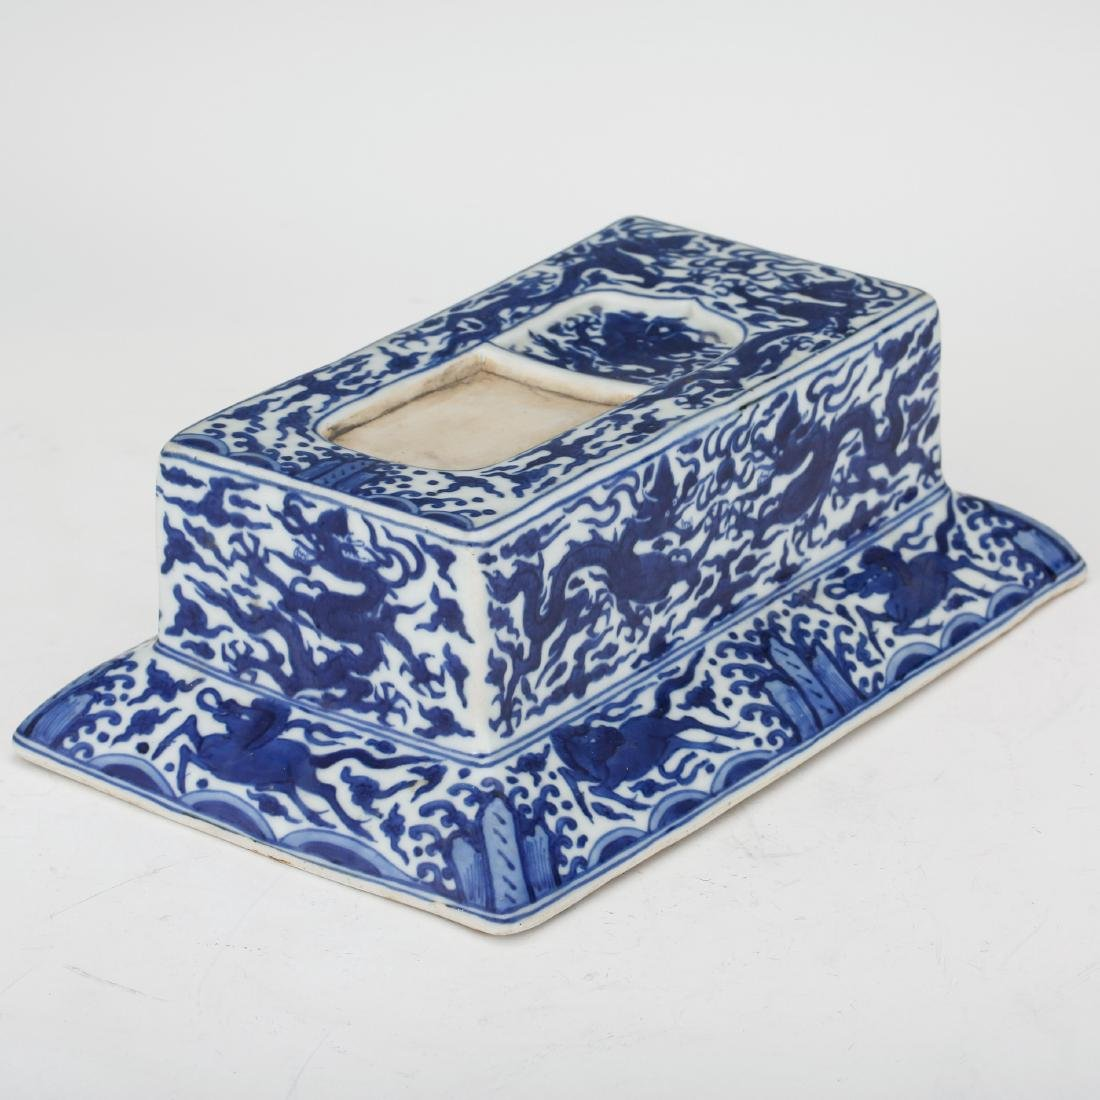 CHINESE BLUE AND WHITE PORCELAIN INK PALETTE